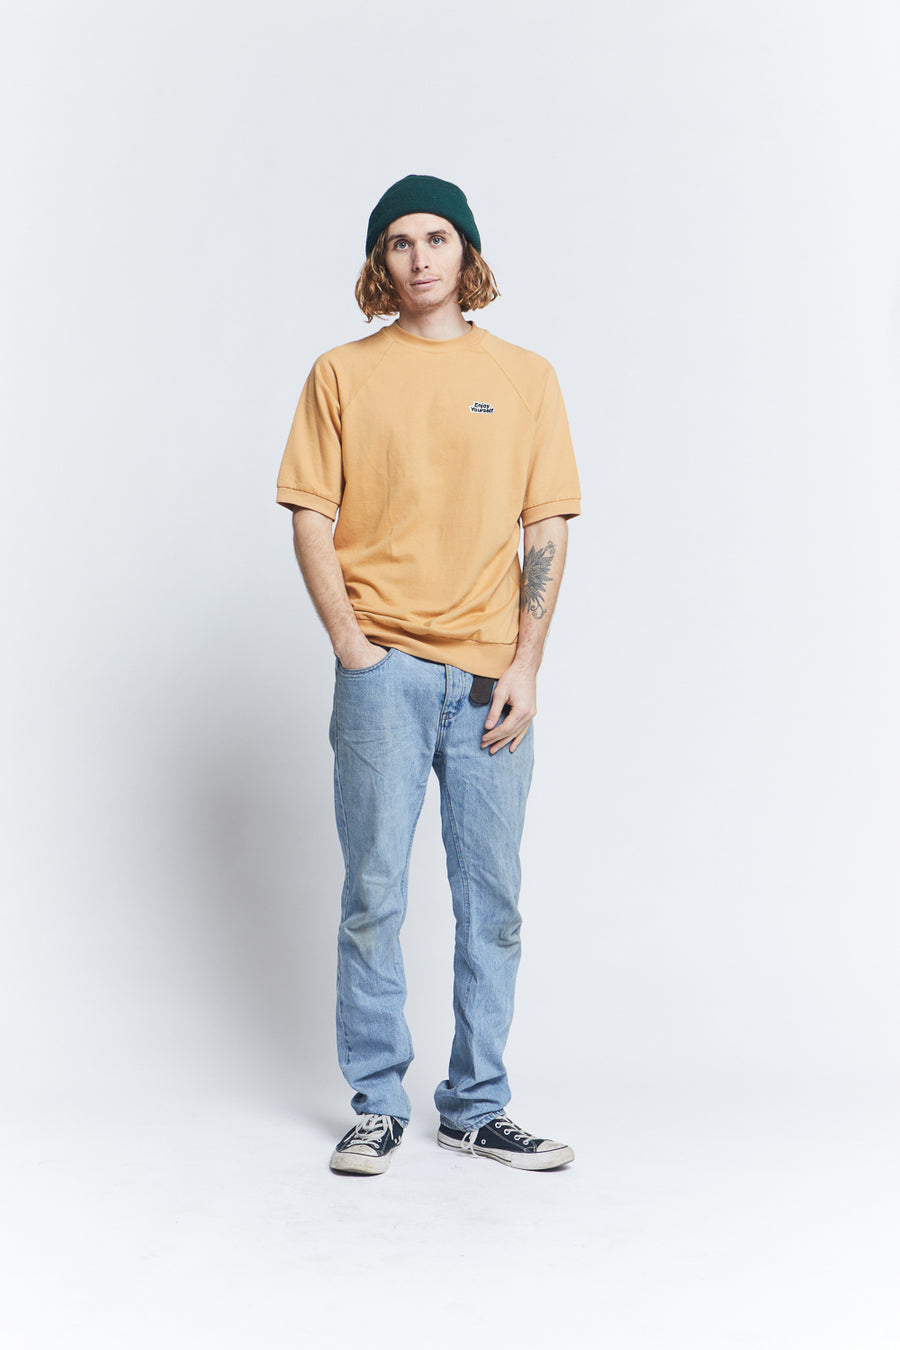 short-sleeved-loose-knit-french-terry-fleece-raglan-ribbed-bottom-waistband-regular-fit-mustard